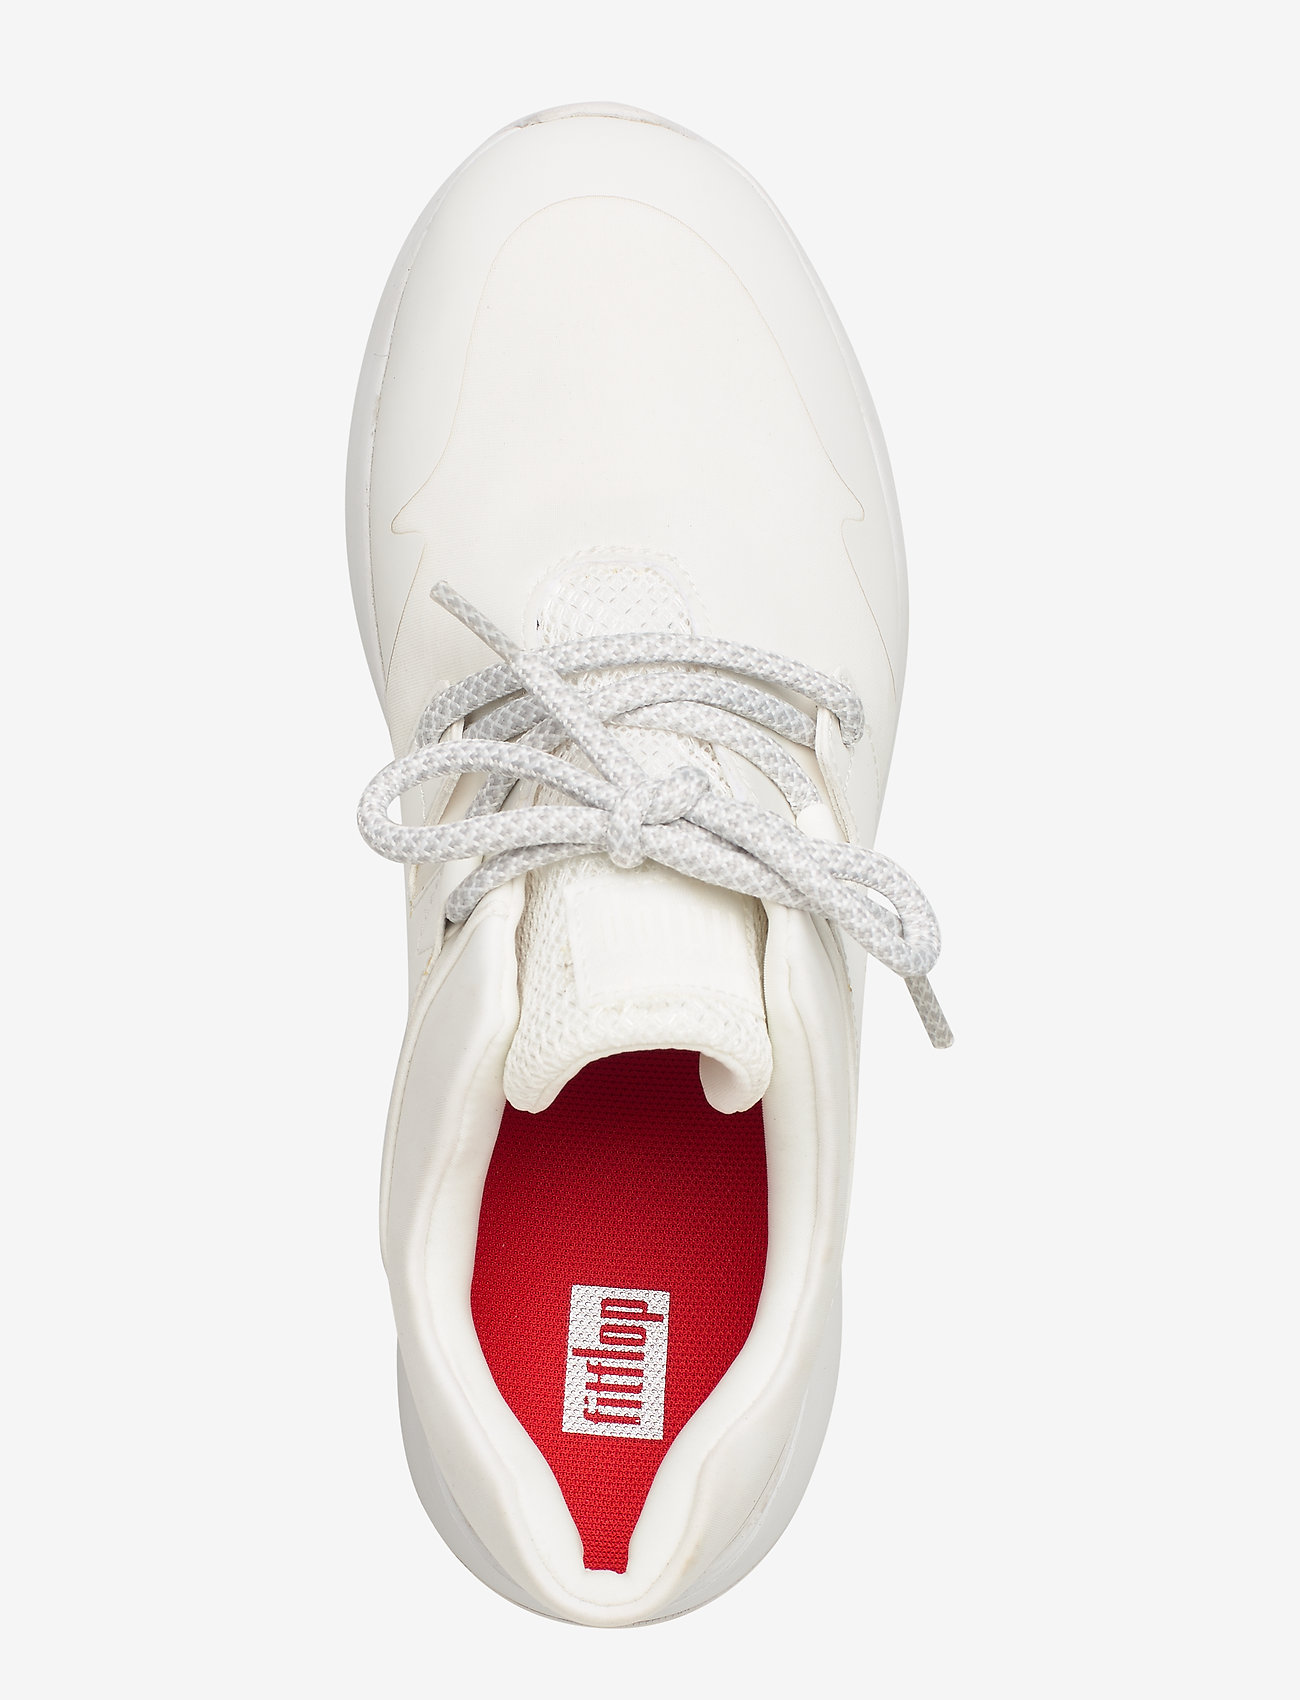 Anni Flex Sneakers (Urban White) - FitFlop